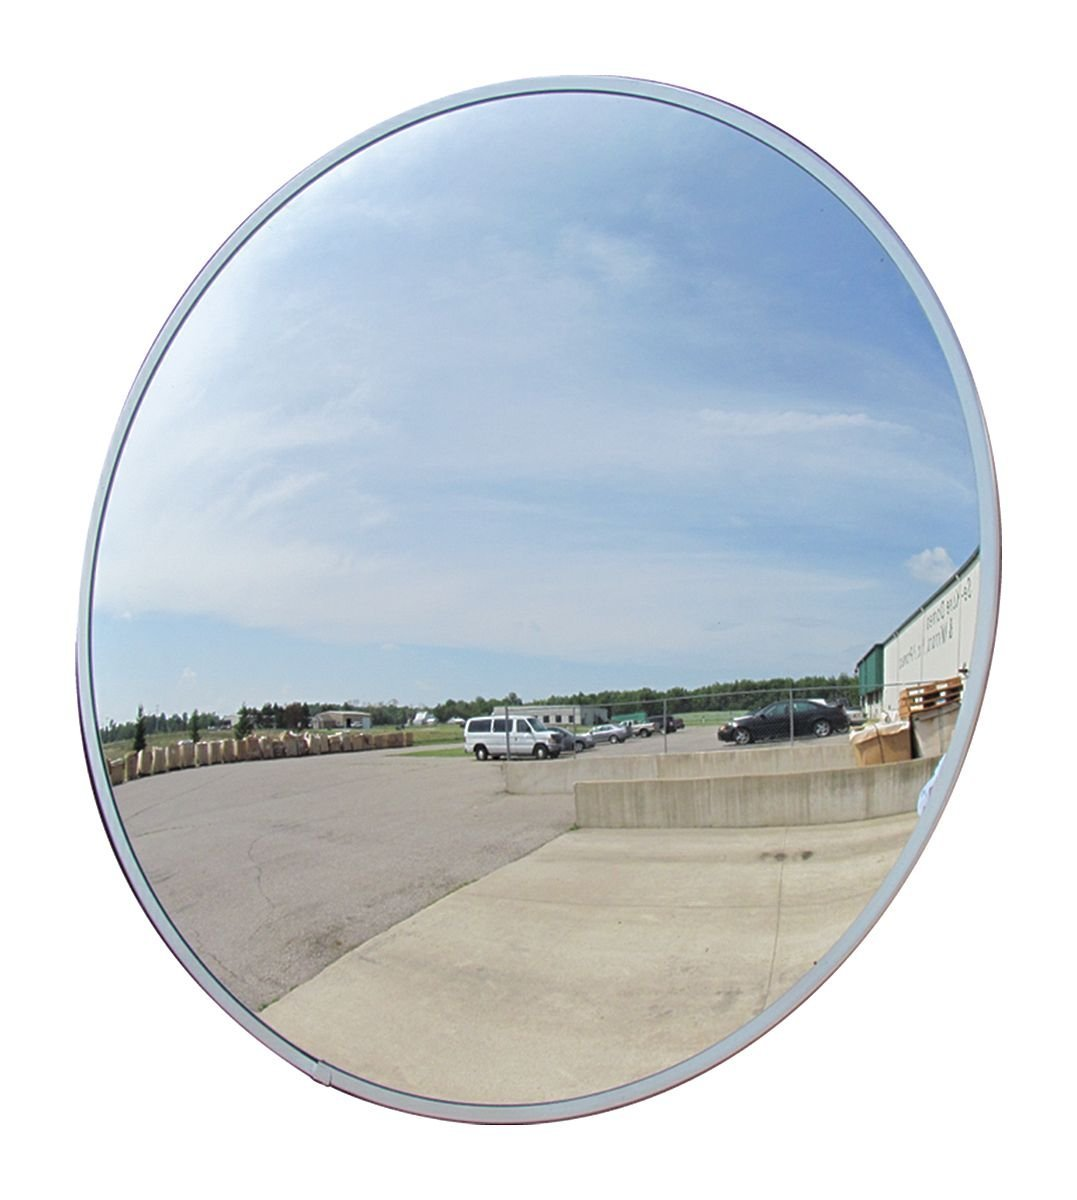 """12"""" Acrylic Convex Mirror, Round Indoor Security Mirror for the Garage Blind Spot, Store Safety, Warehouse Side View, and More, Circular Wall Mirror for Personal or Office Use - Vision Metalizers IC1200"""